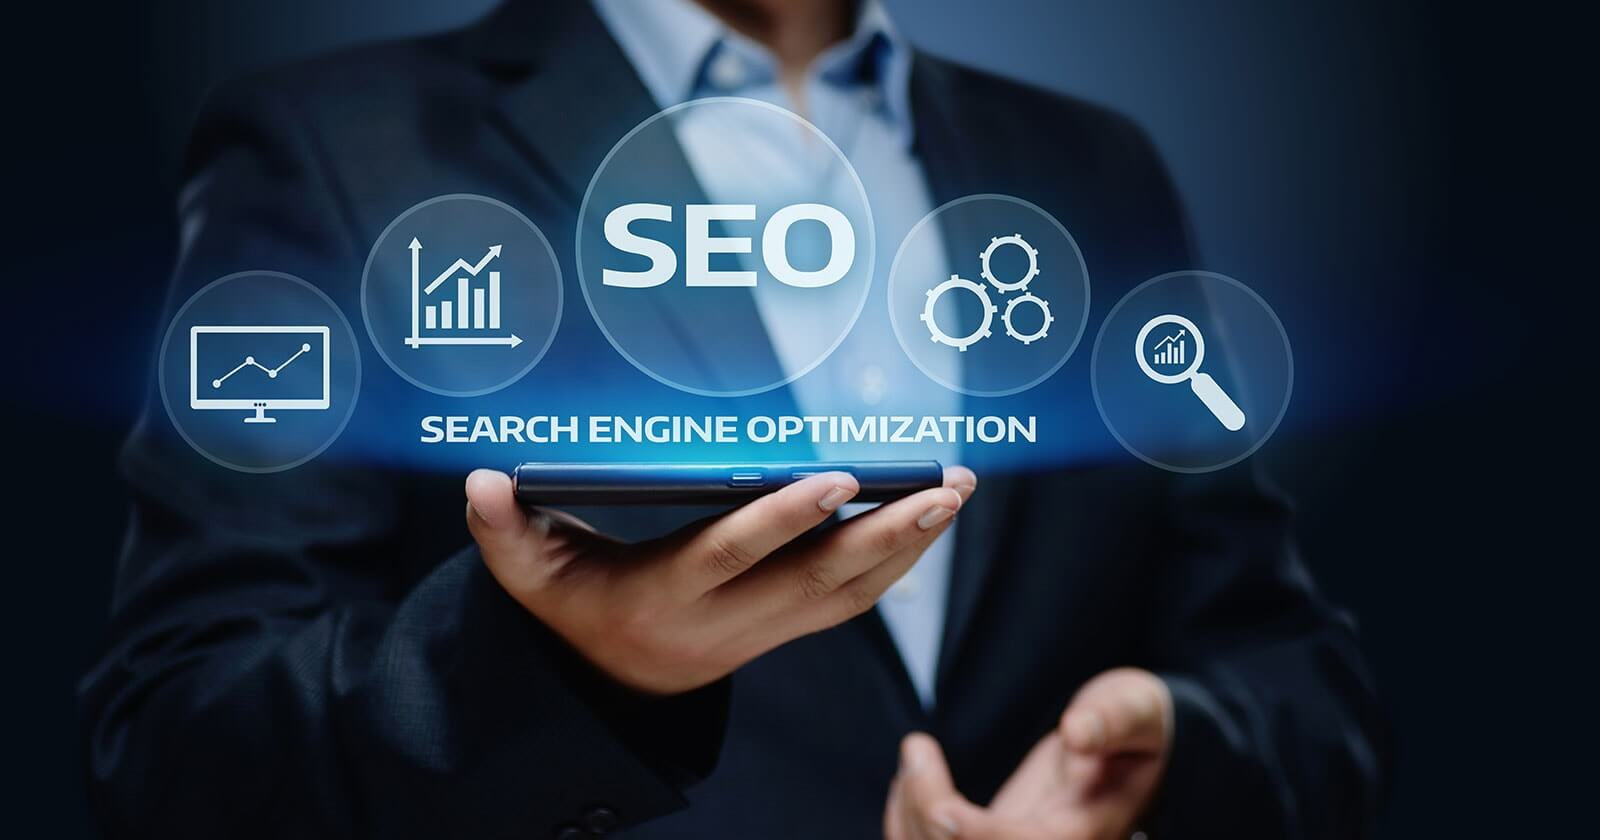 why seo is important for small business